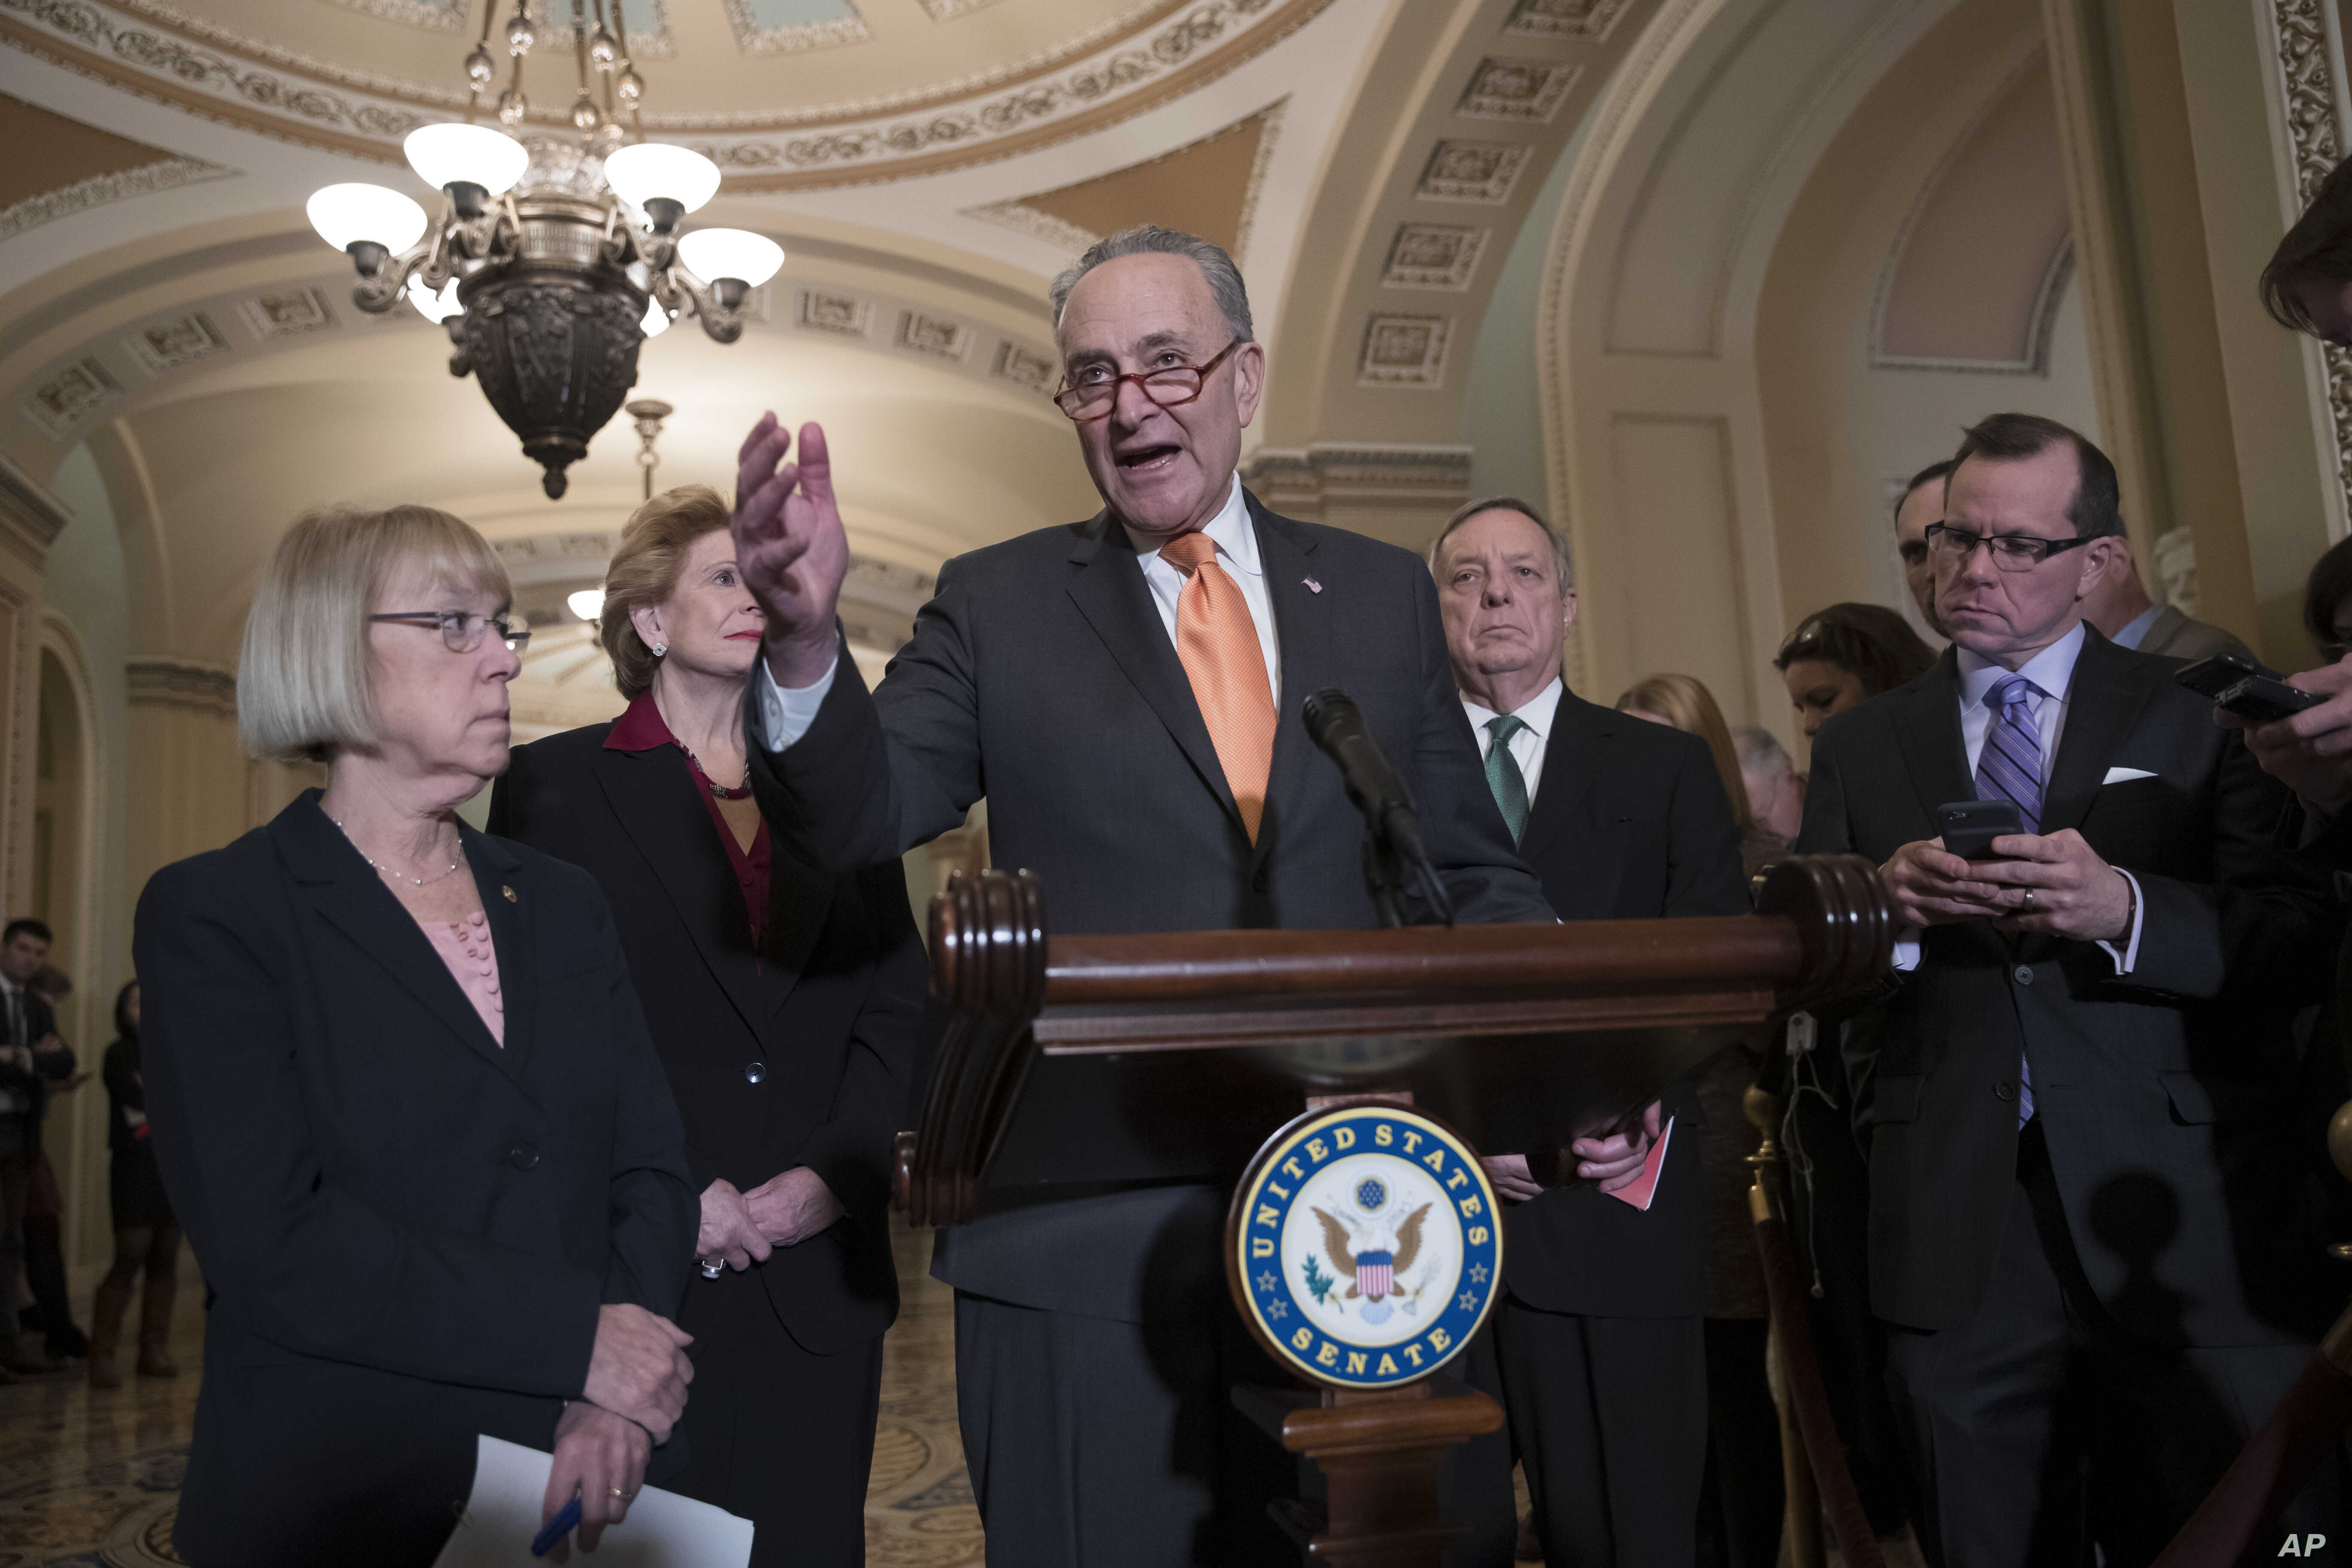 Senate Minority Leader Chuck Schumer, D-N.Y., Sen. Patty Murray, D-Wash., Sen. Debbie Stabenow, D-Mich., and Sen. Dick Durbin, D-Ill., the assistant Democratic leader, talks to reporters about the possibility of a partial government shutdown, at the ...